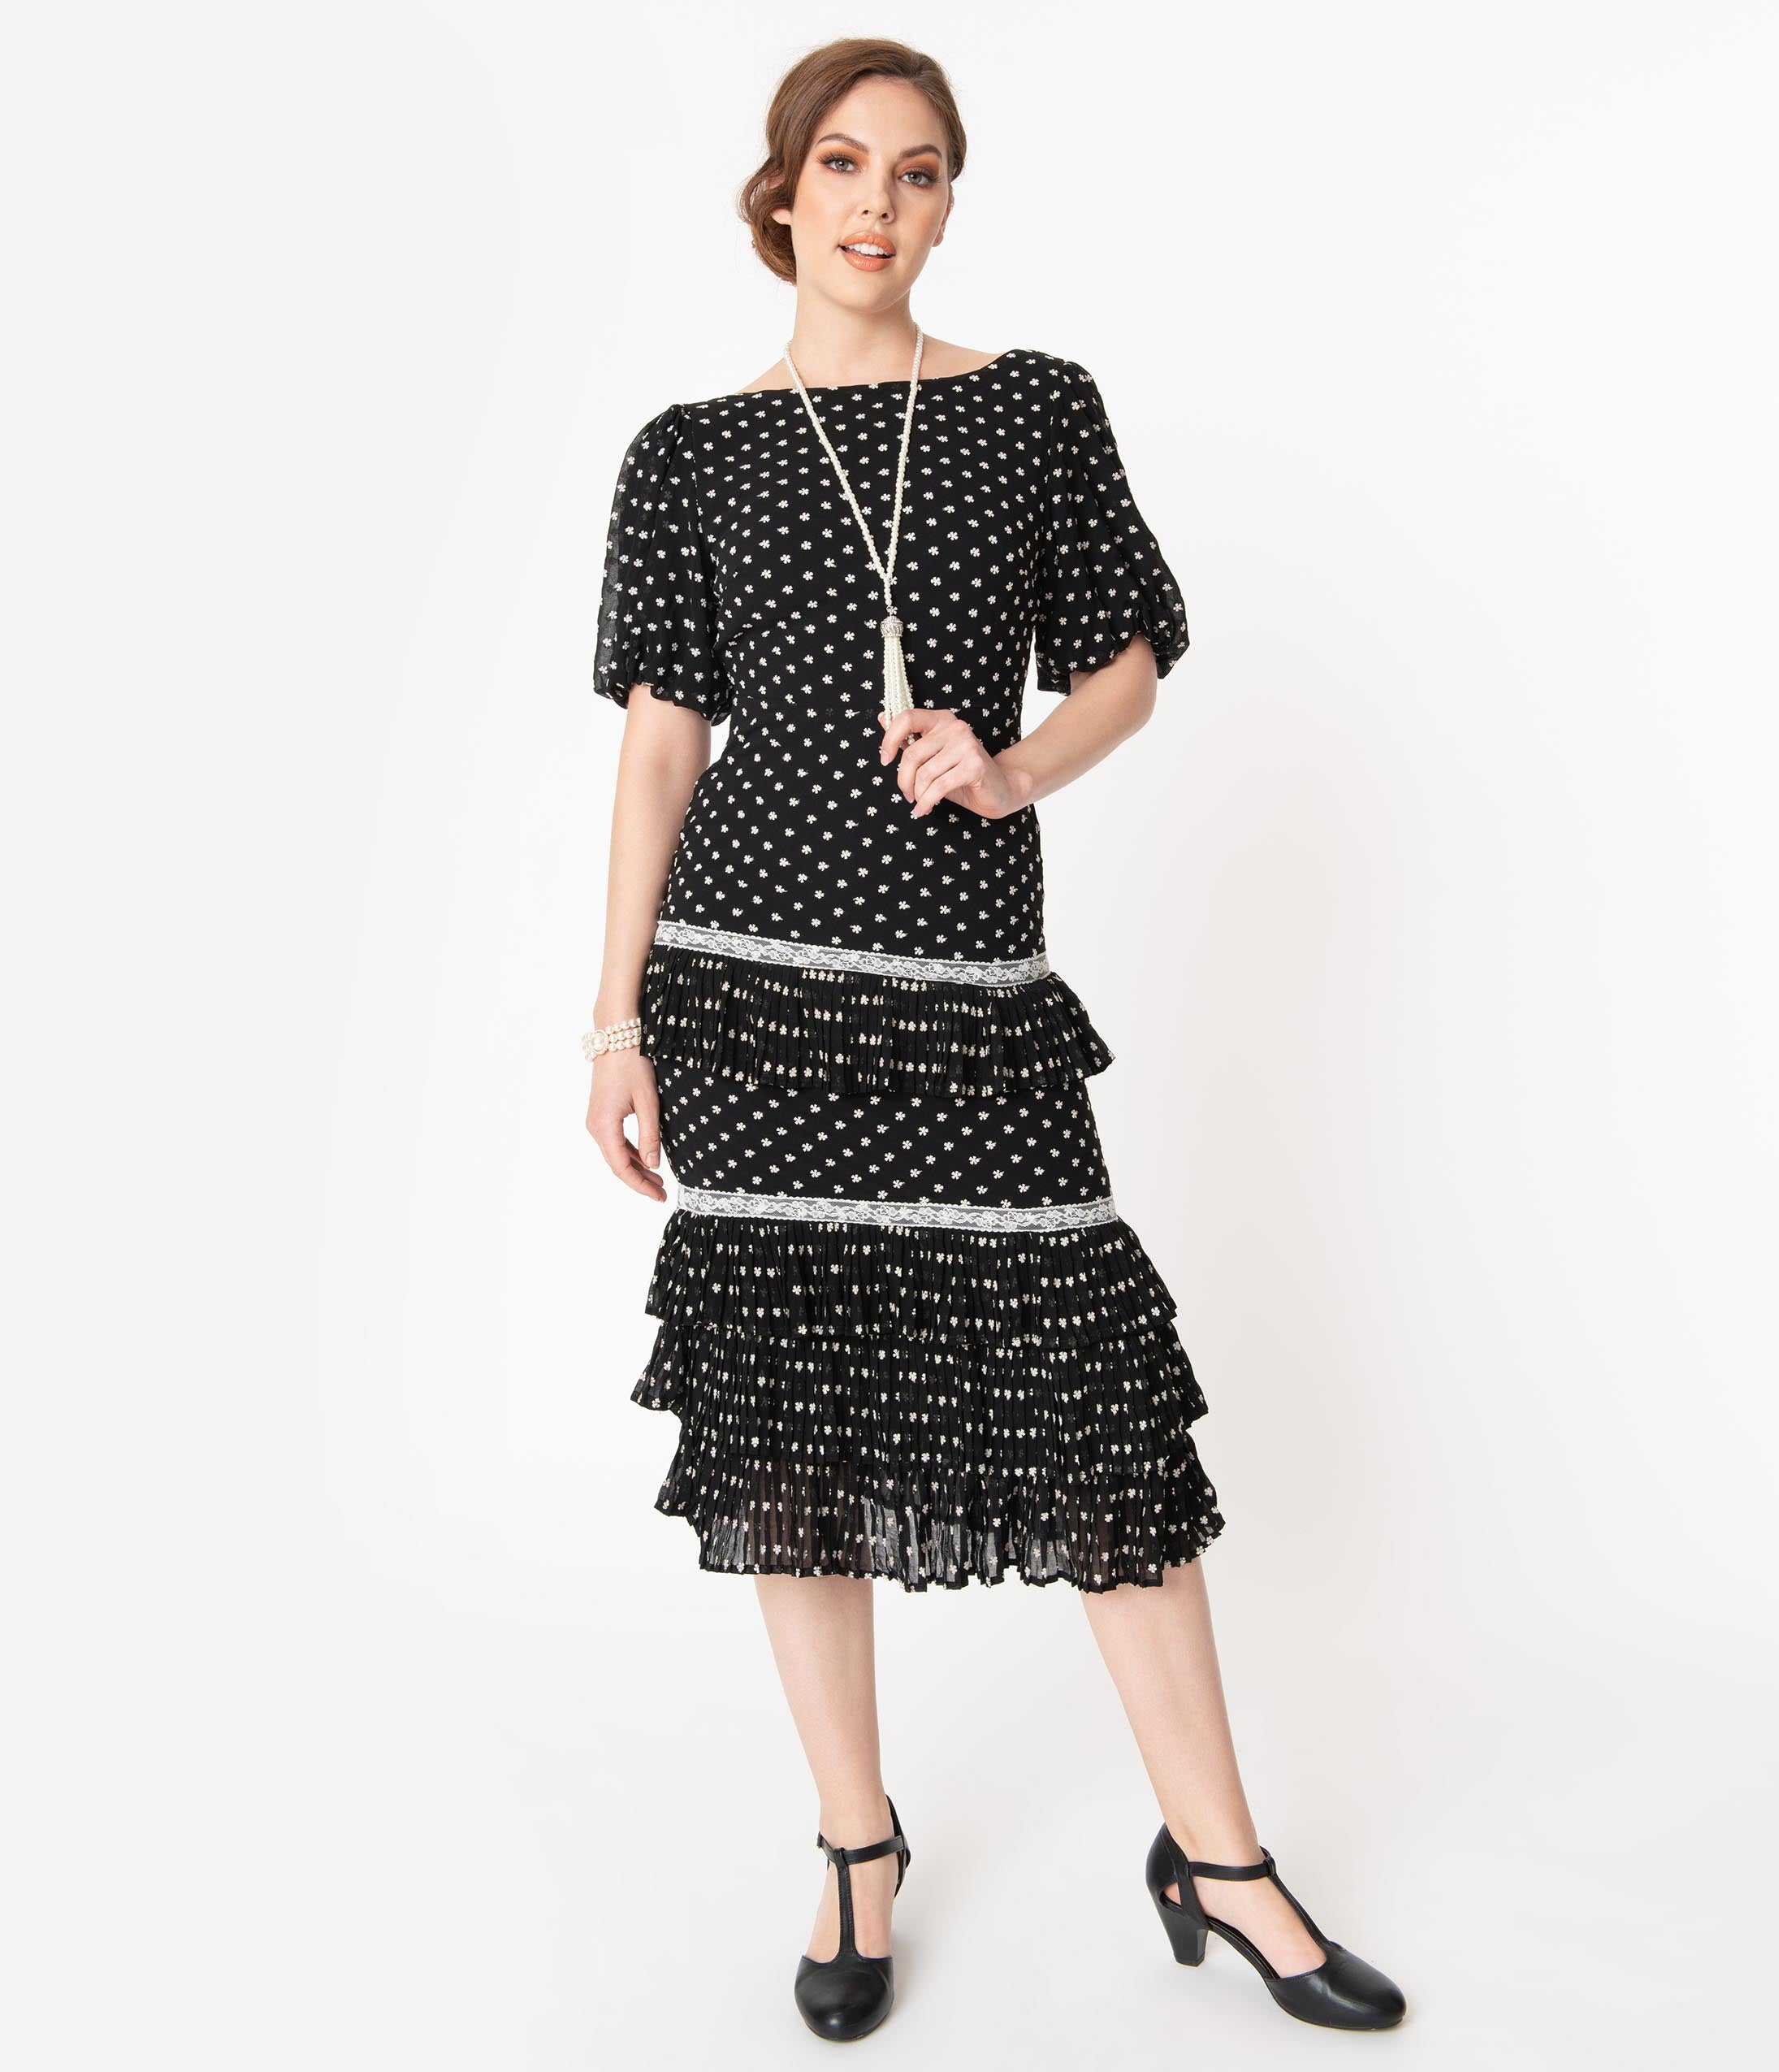 Modest, Mature, Mrs. Vintage Dresses – 20s, 30s, 40s, 50s, 60s Retro Style Black Floral Print Tiered Midi Dress $82.00 AT vintagedancer.com